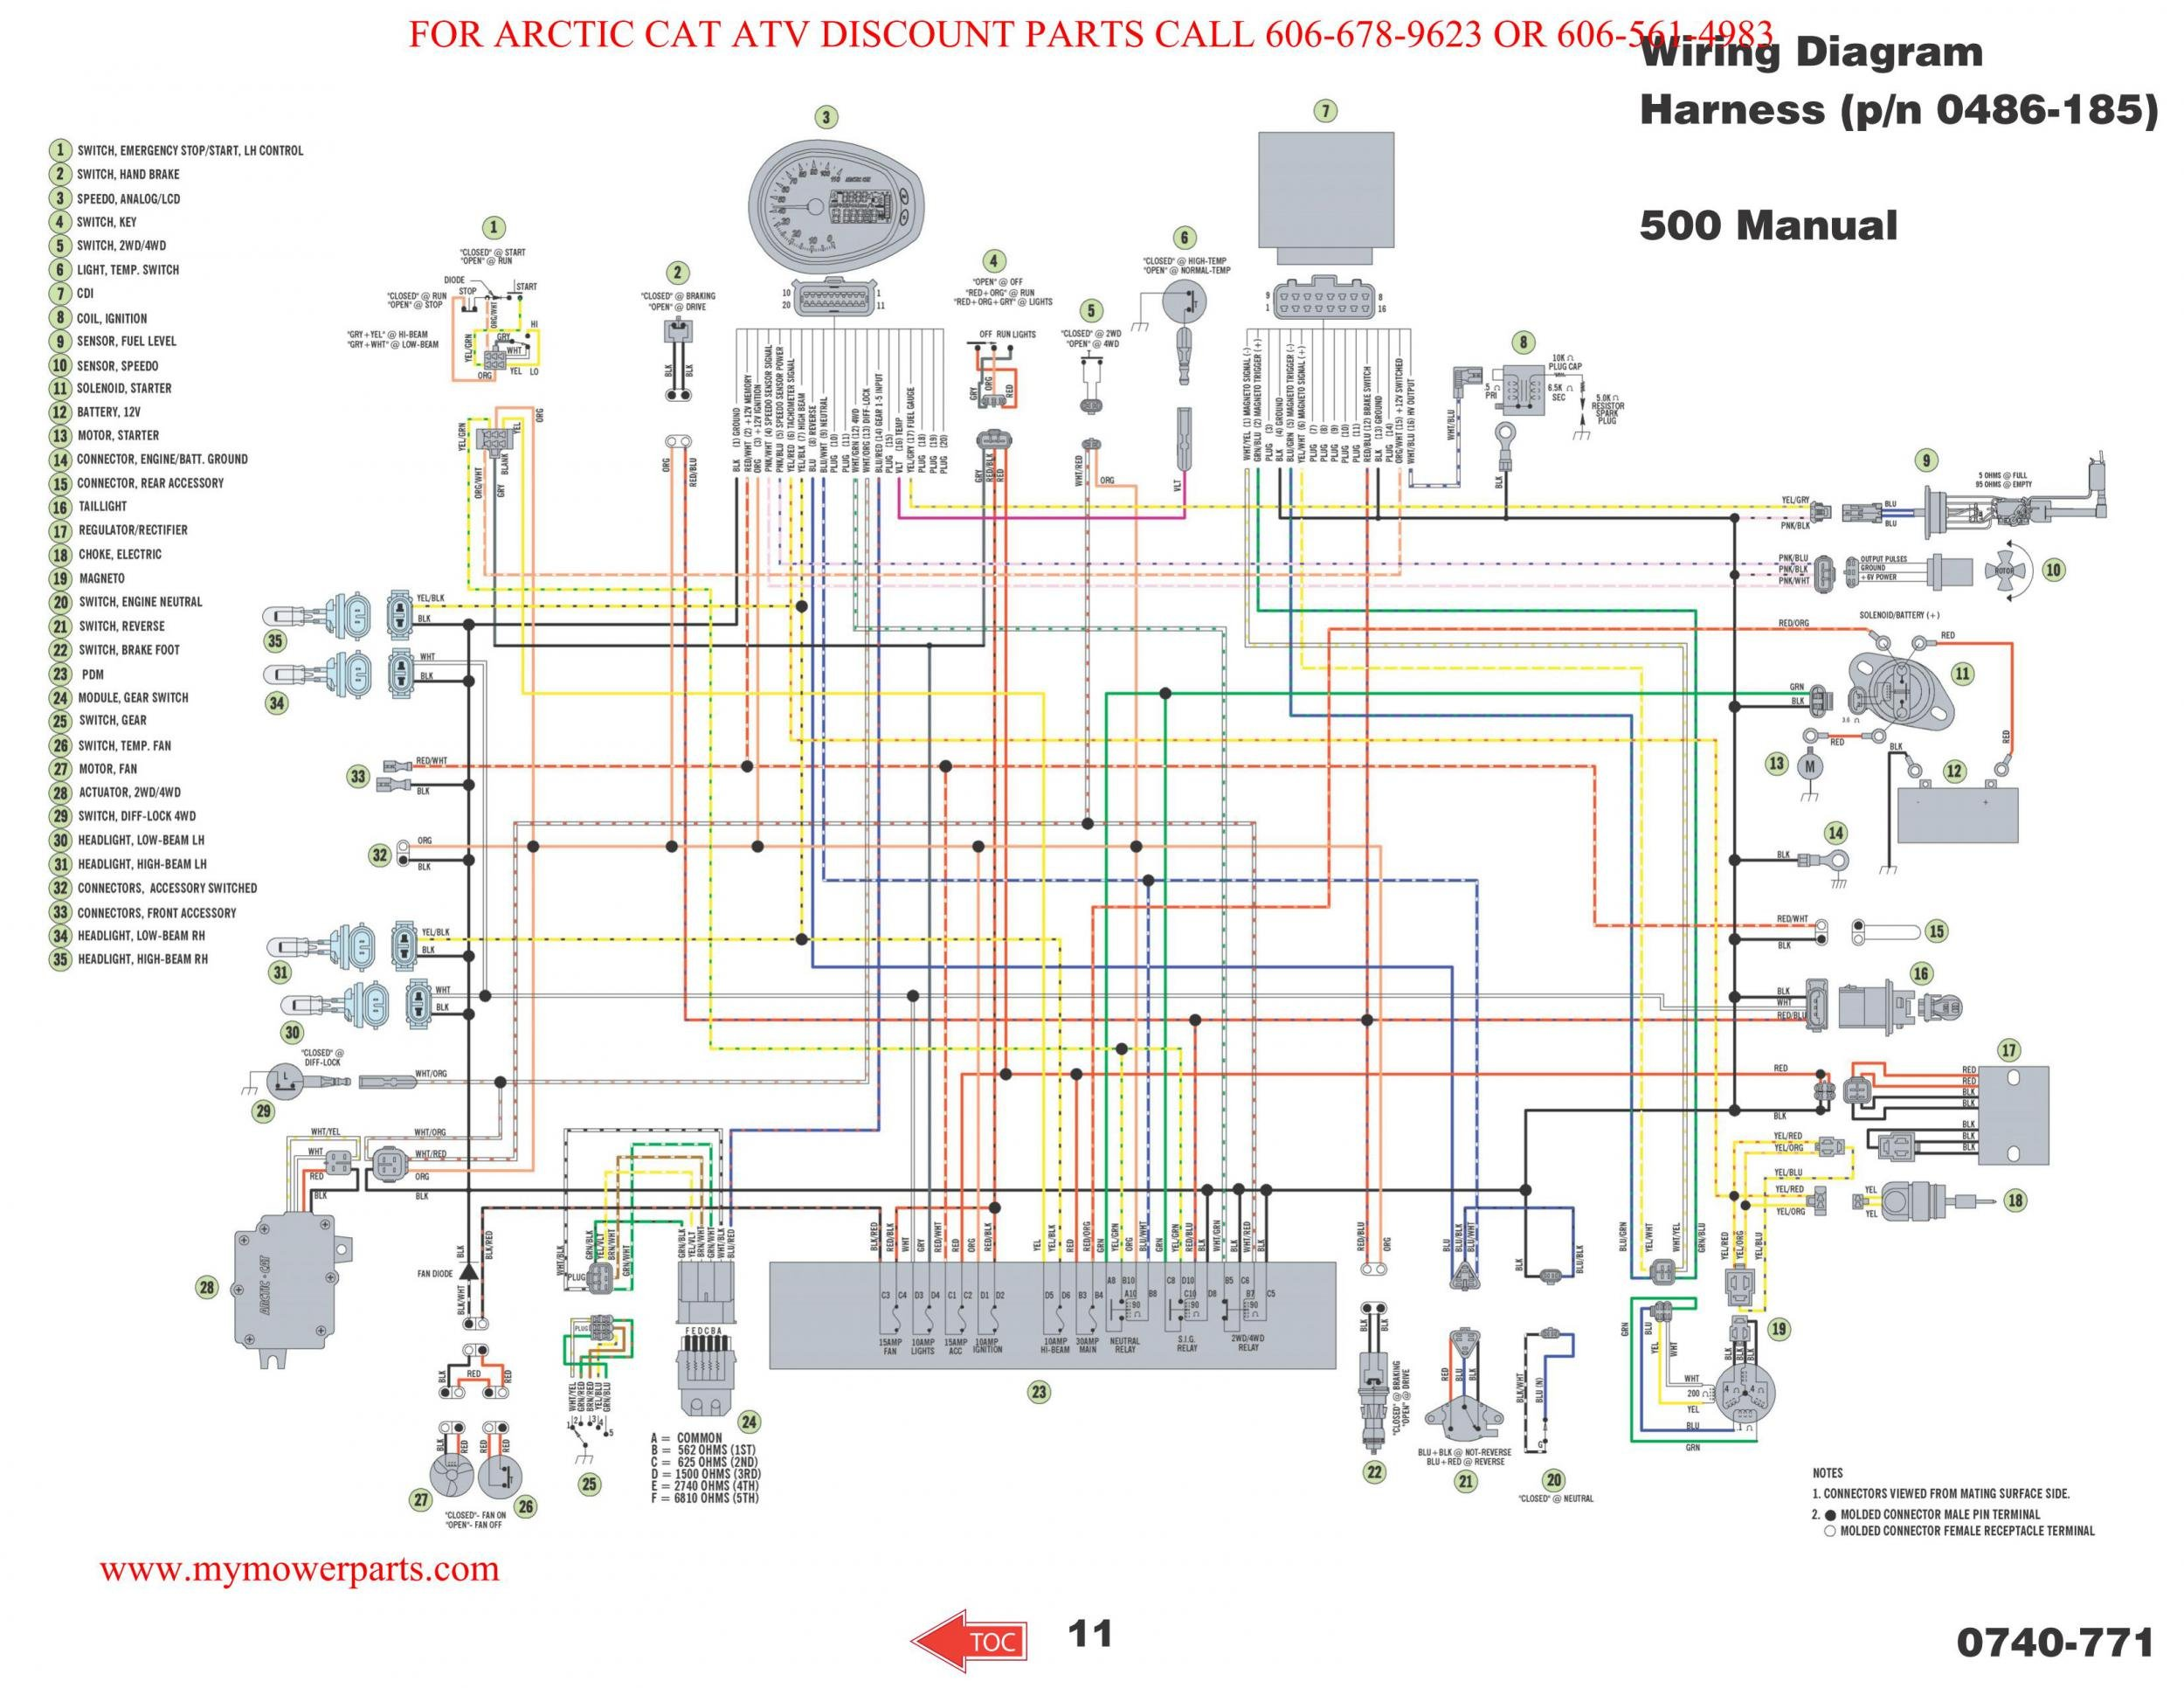 suzuki xl7 fuse diagram suzuki m13a engine diagram suzuki wiring diagrams